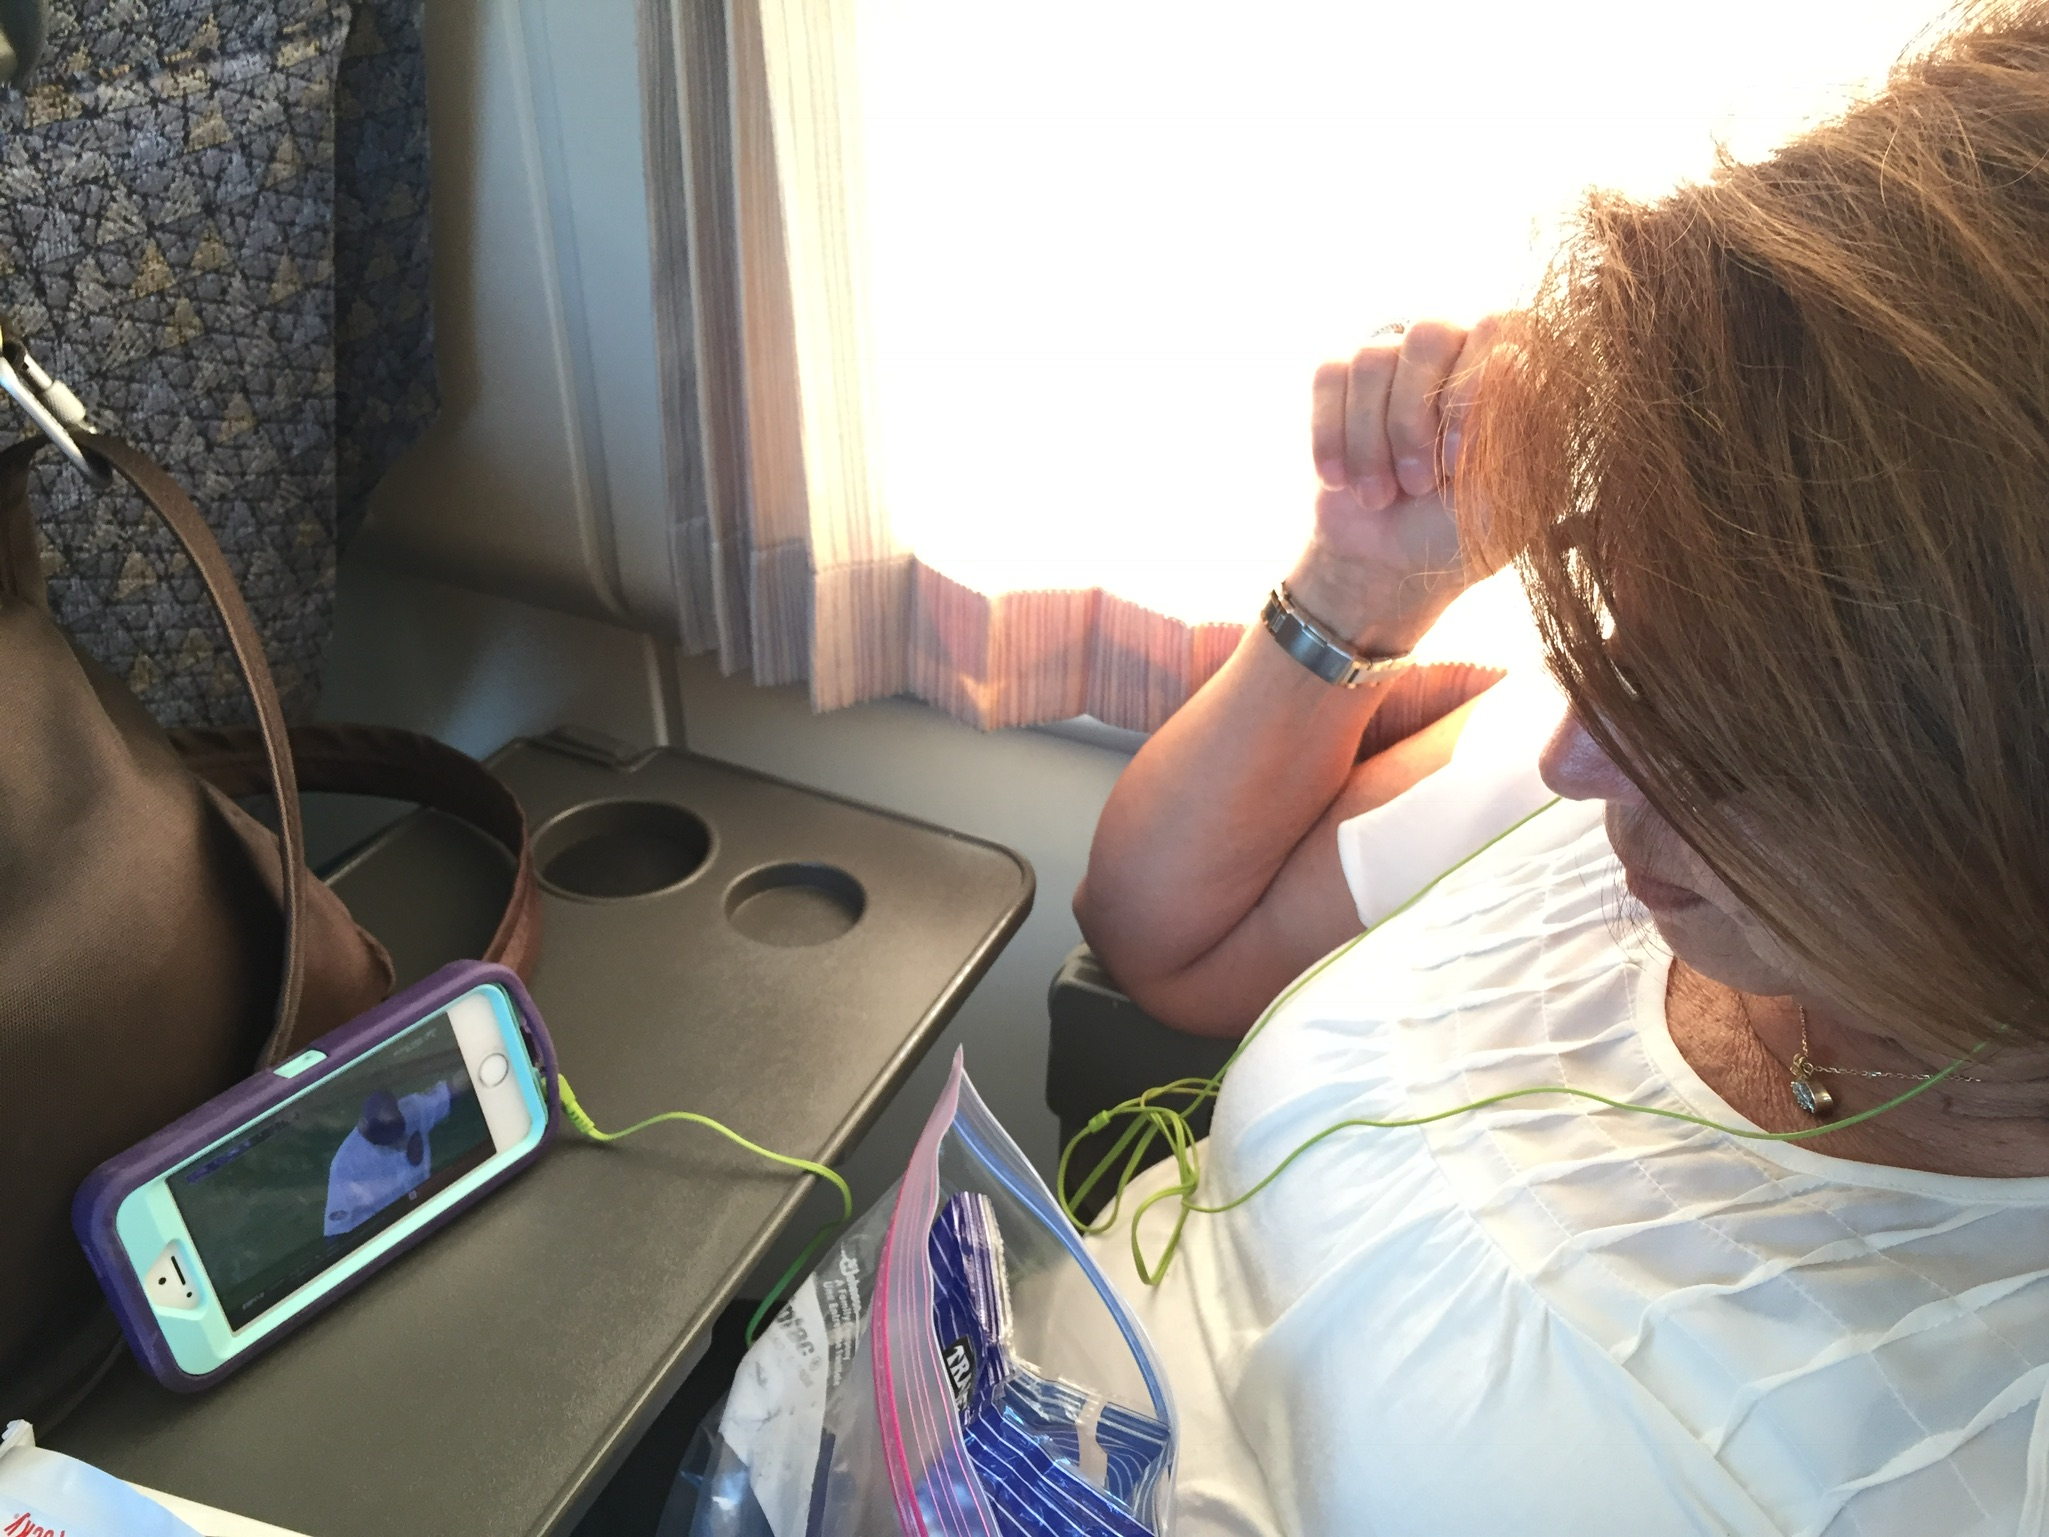 Watching the MLB Post-Season on our phones during our train ride. Let's go A's!